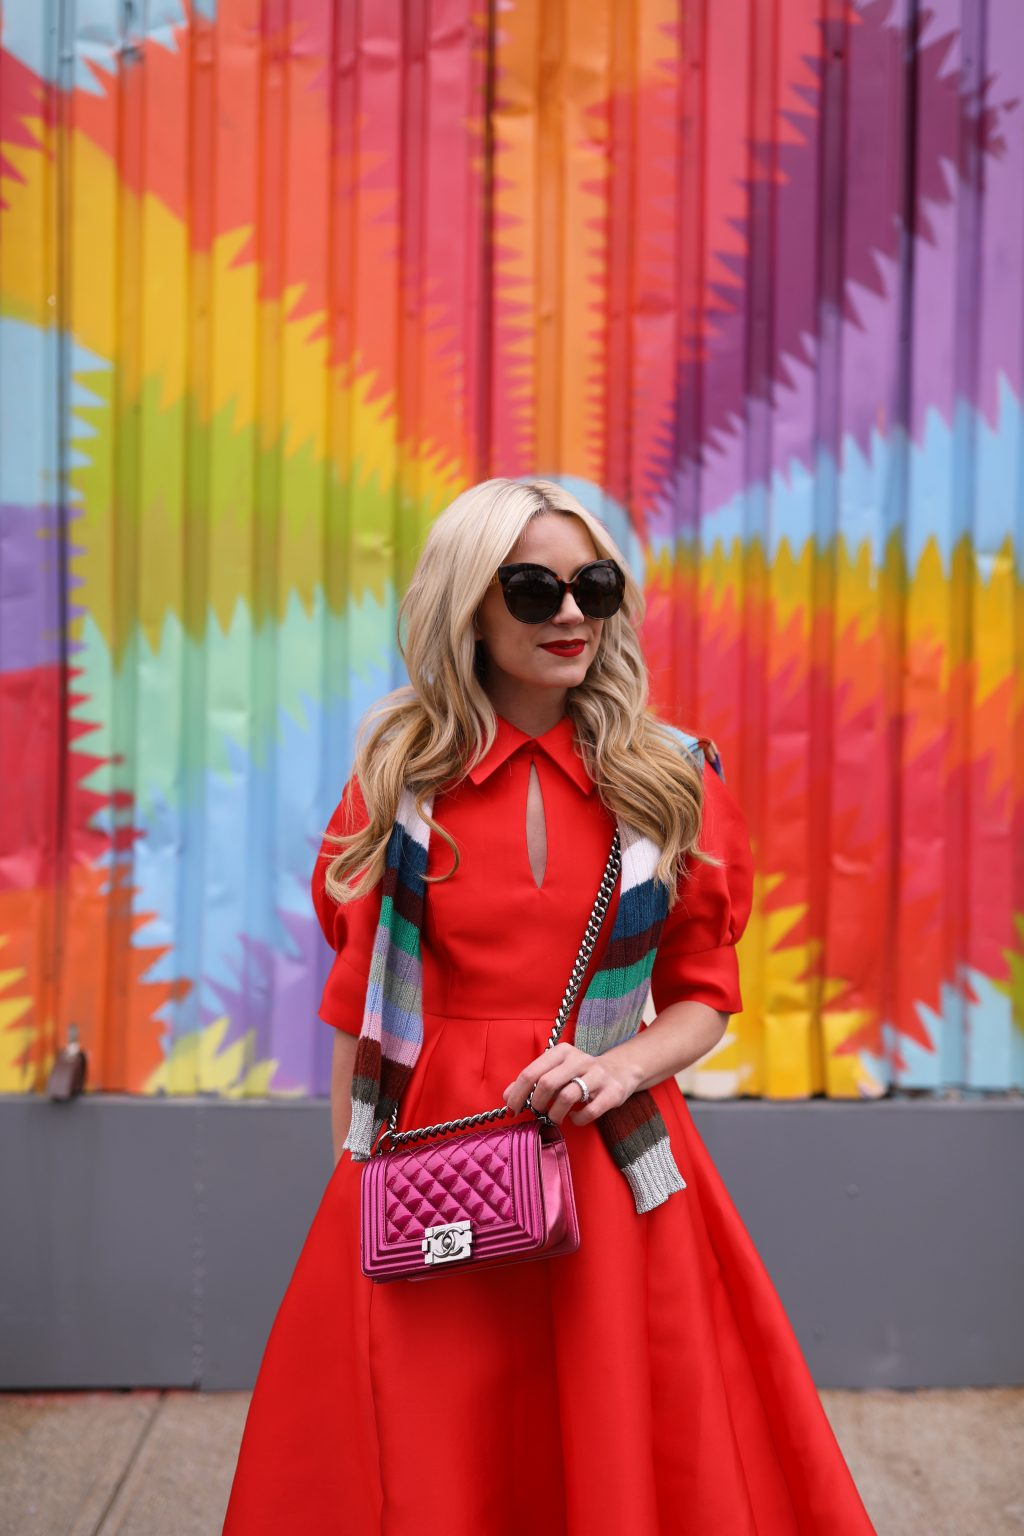 blair-eadie-atlantic-pacific-blogger-chanel-trendlee-gucci-boy-bag-rainbow-brooklyn